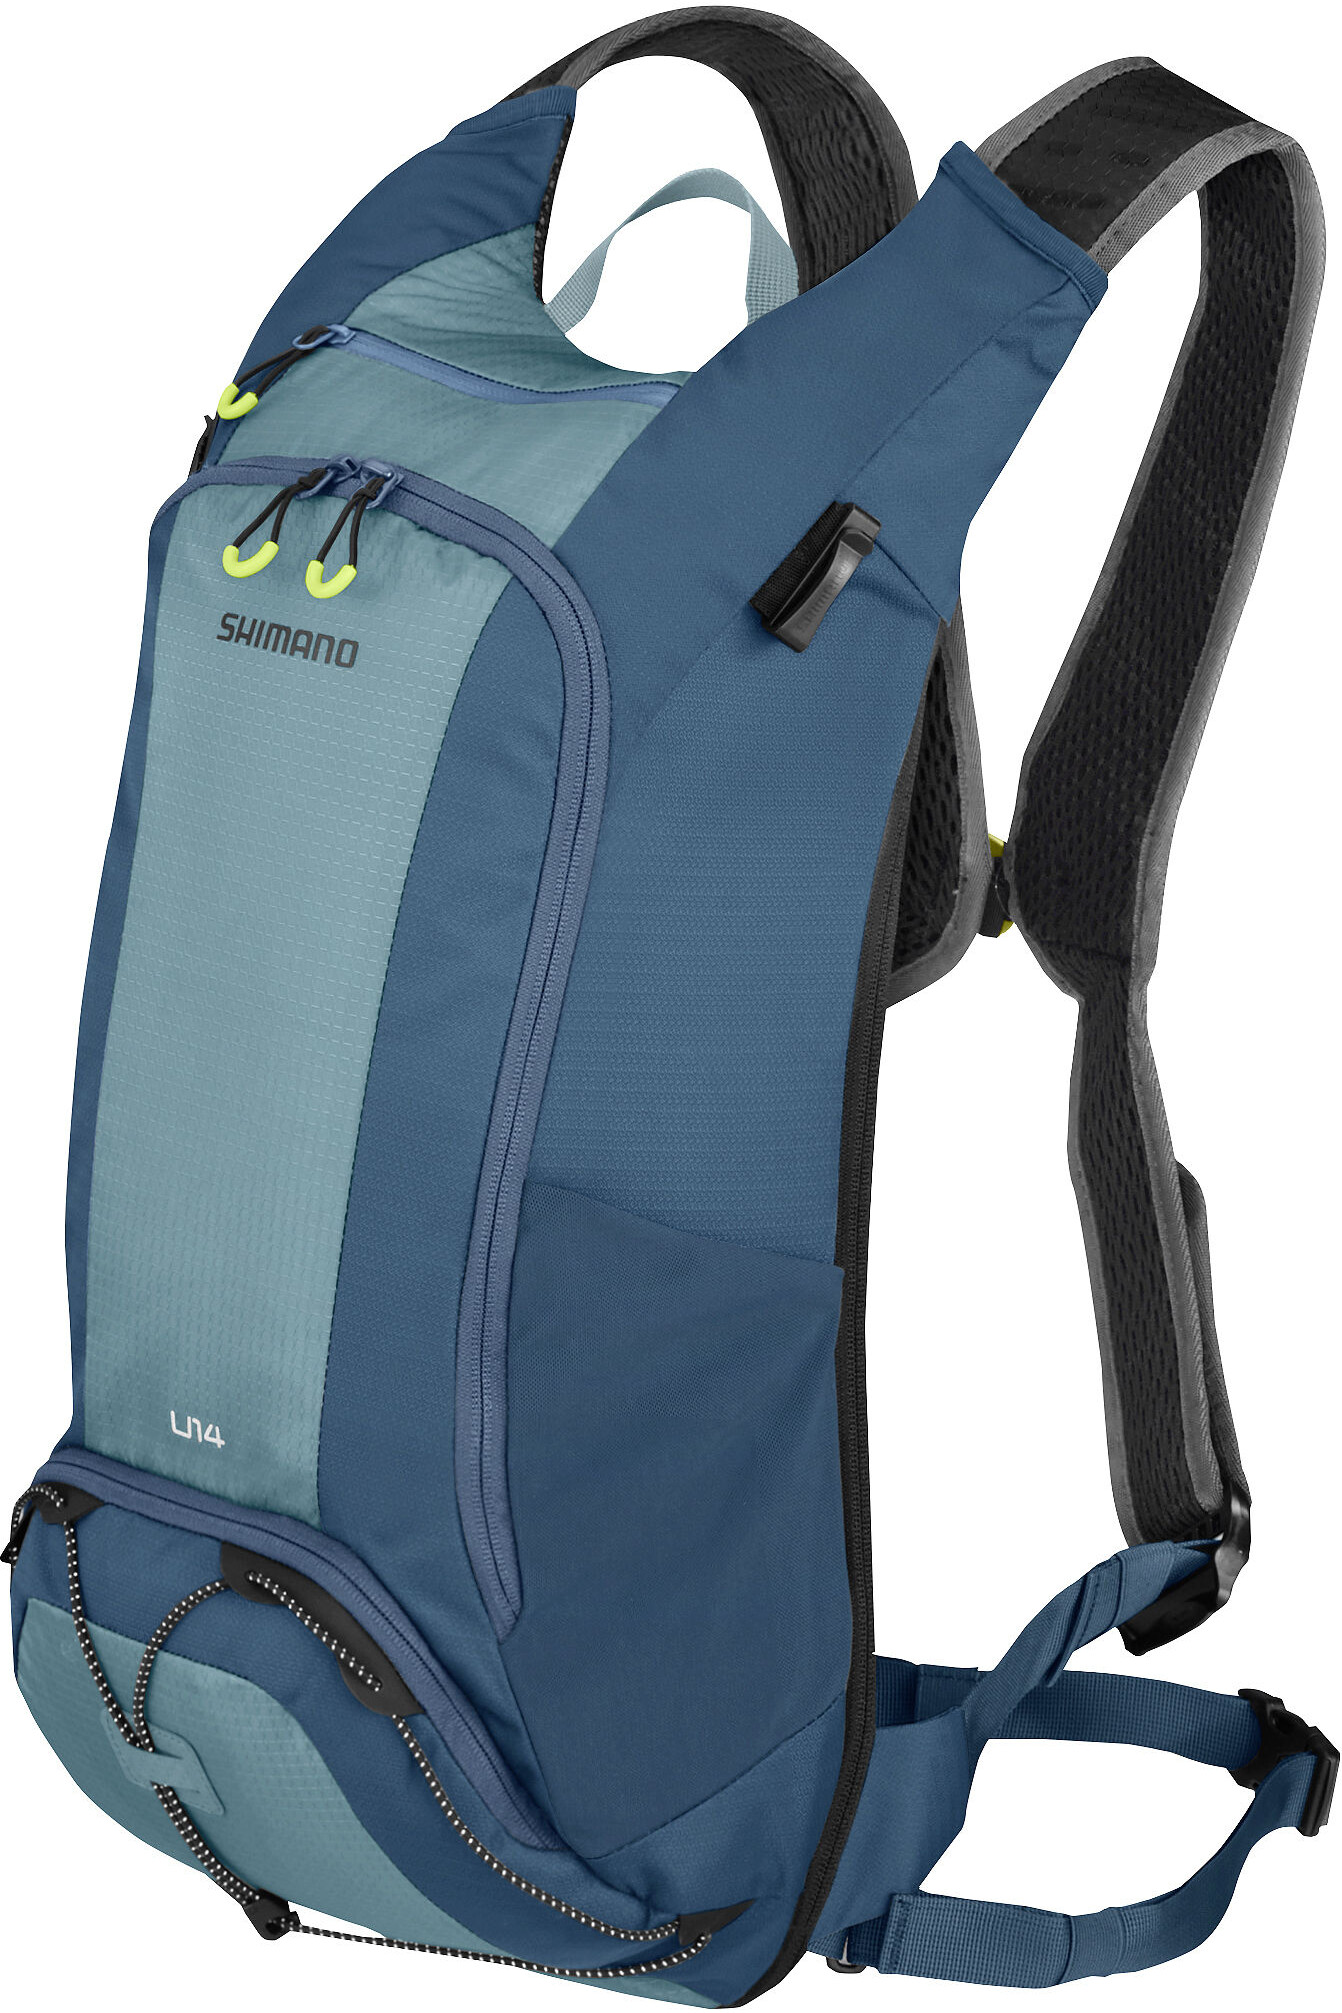 Shimano Unzen Ii Trail Backpack 14l Aegean Blue G 252 Nstig